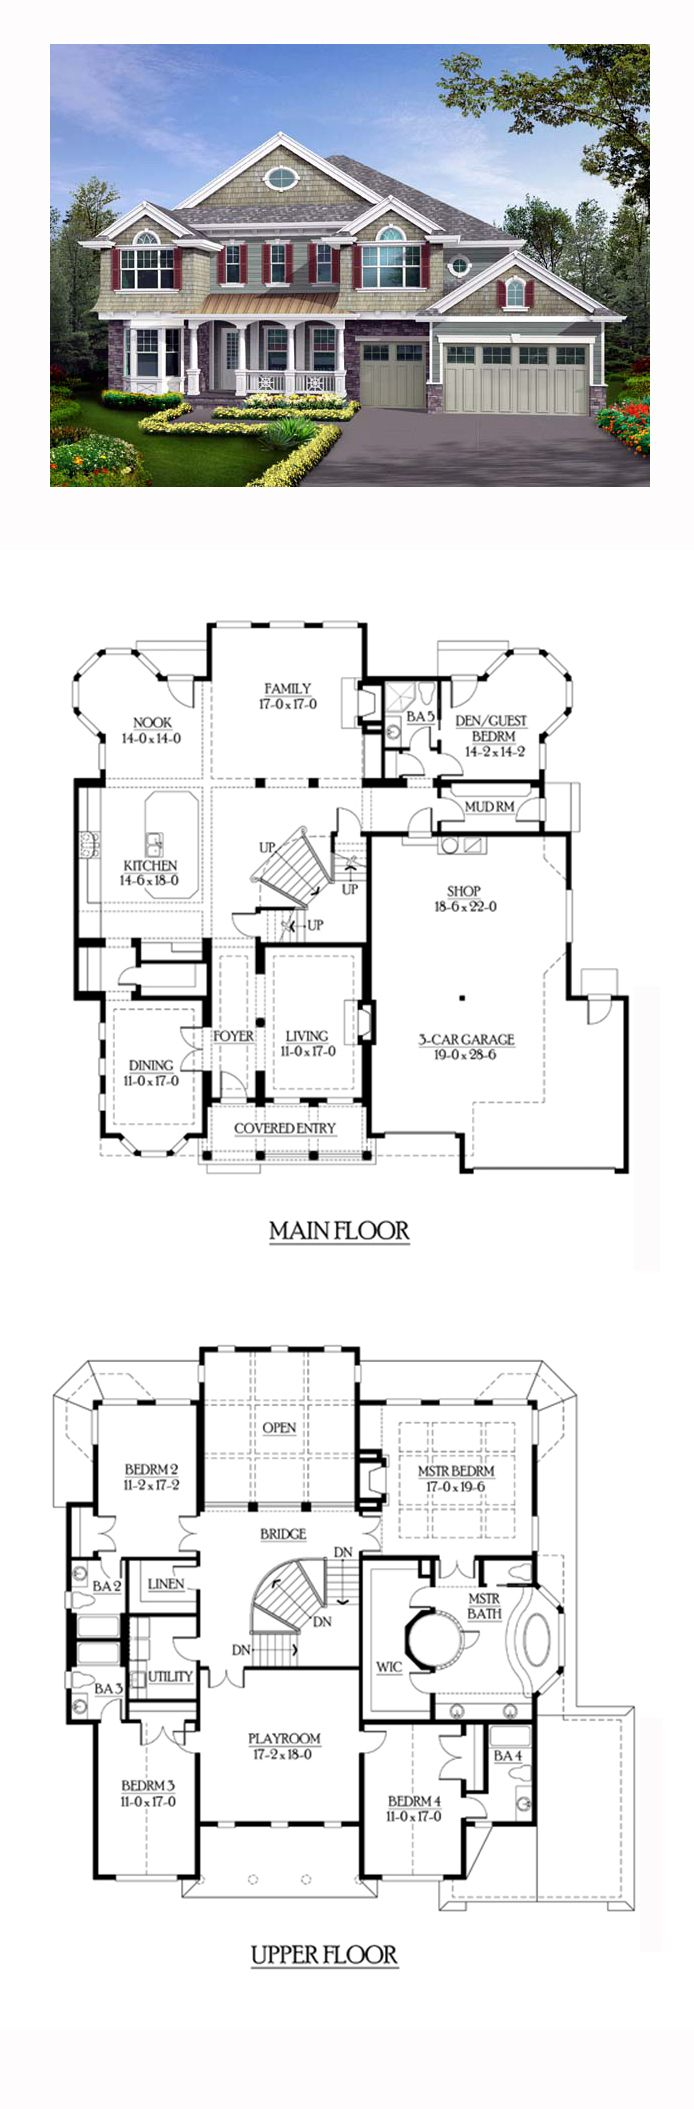 Best 25 floor plans ideas on pinterest house floor for Neat house designs